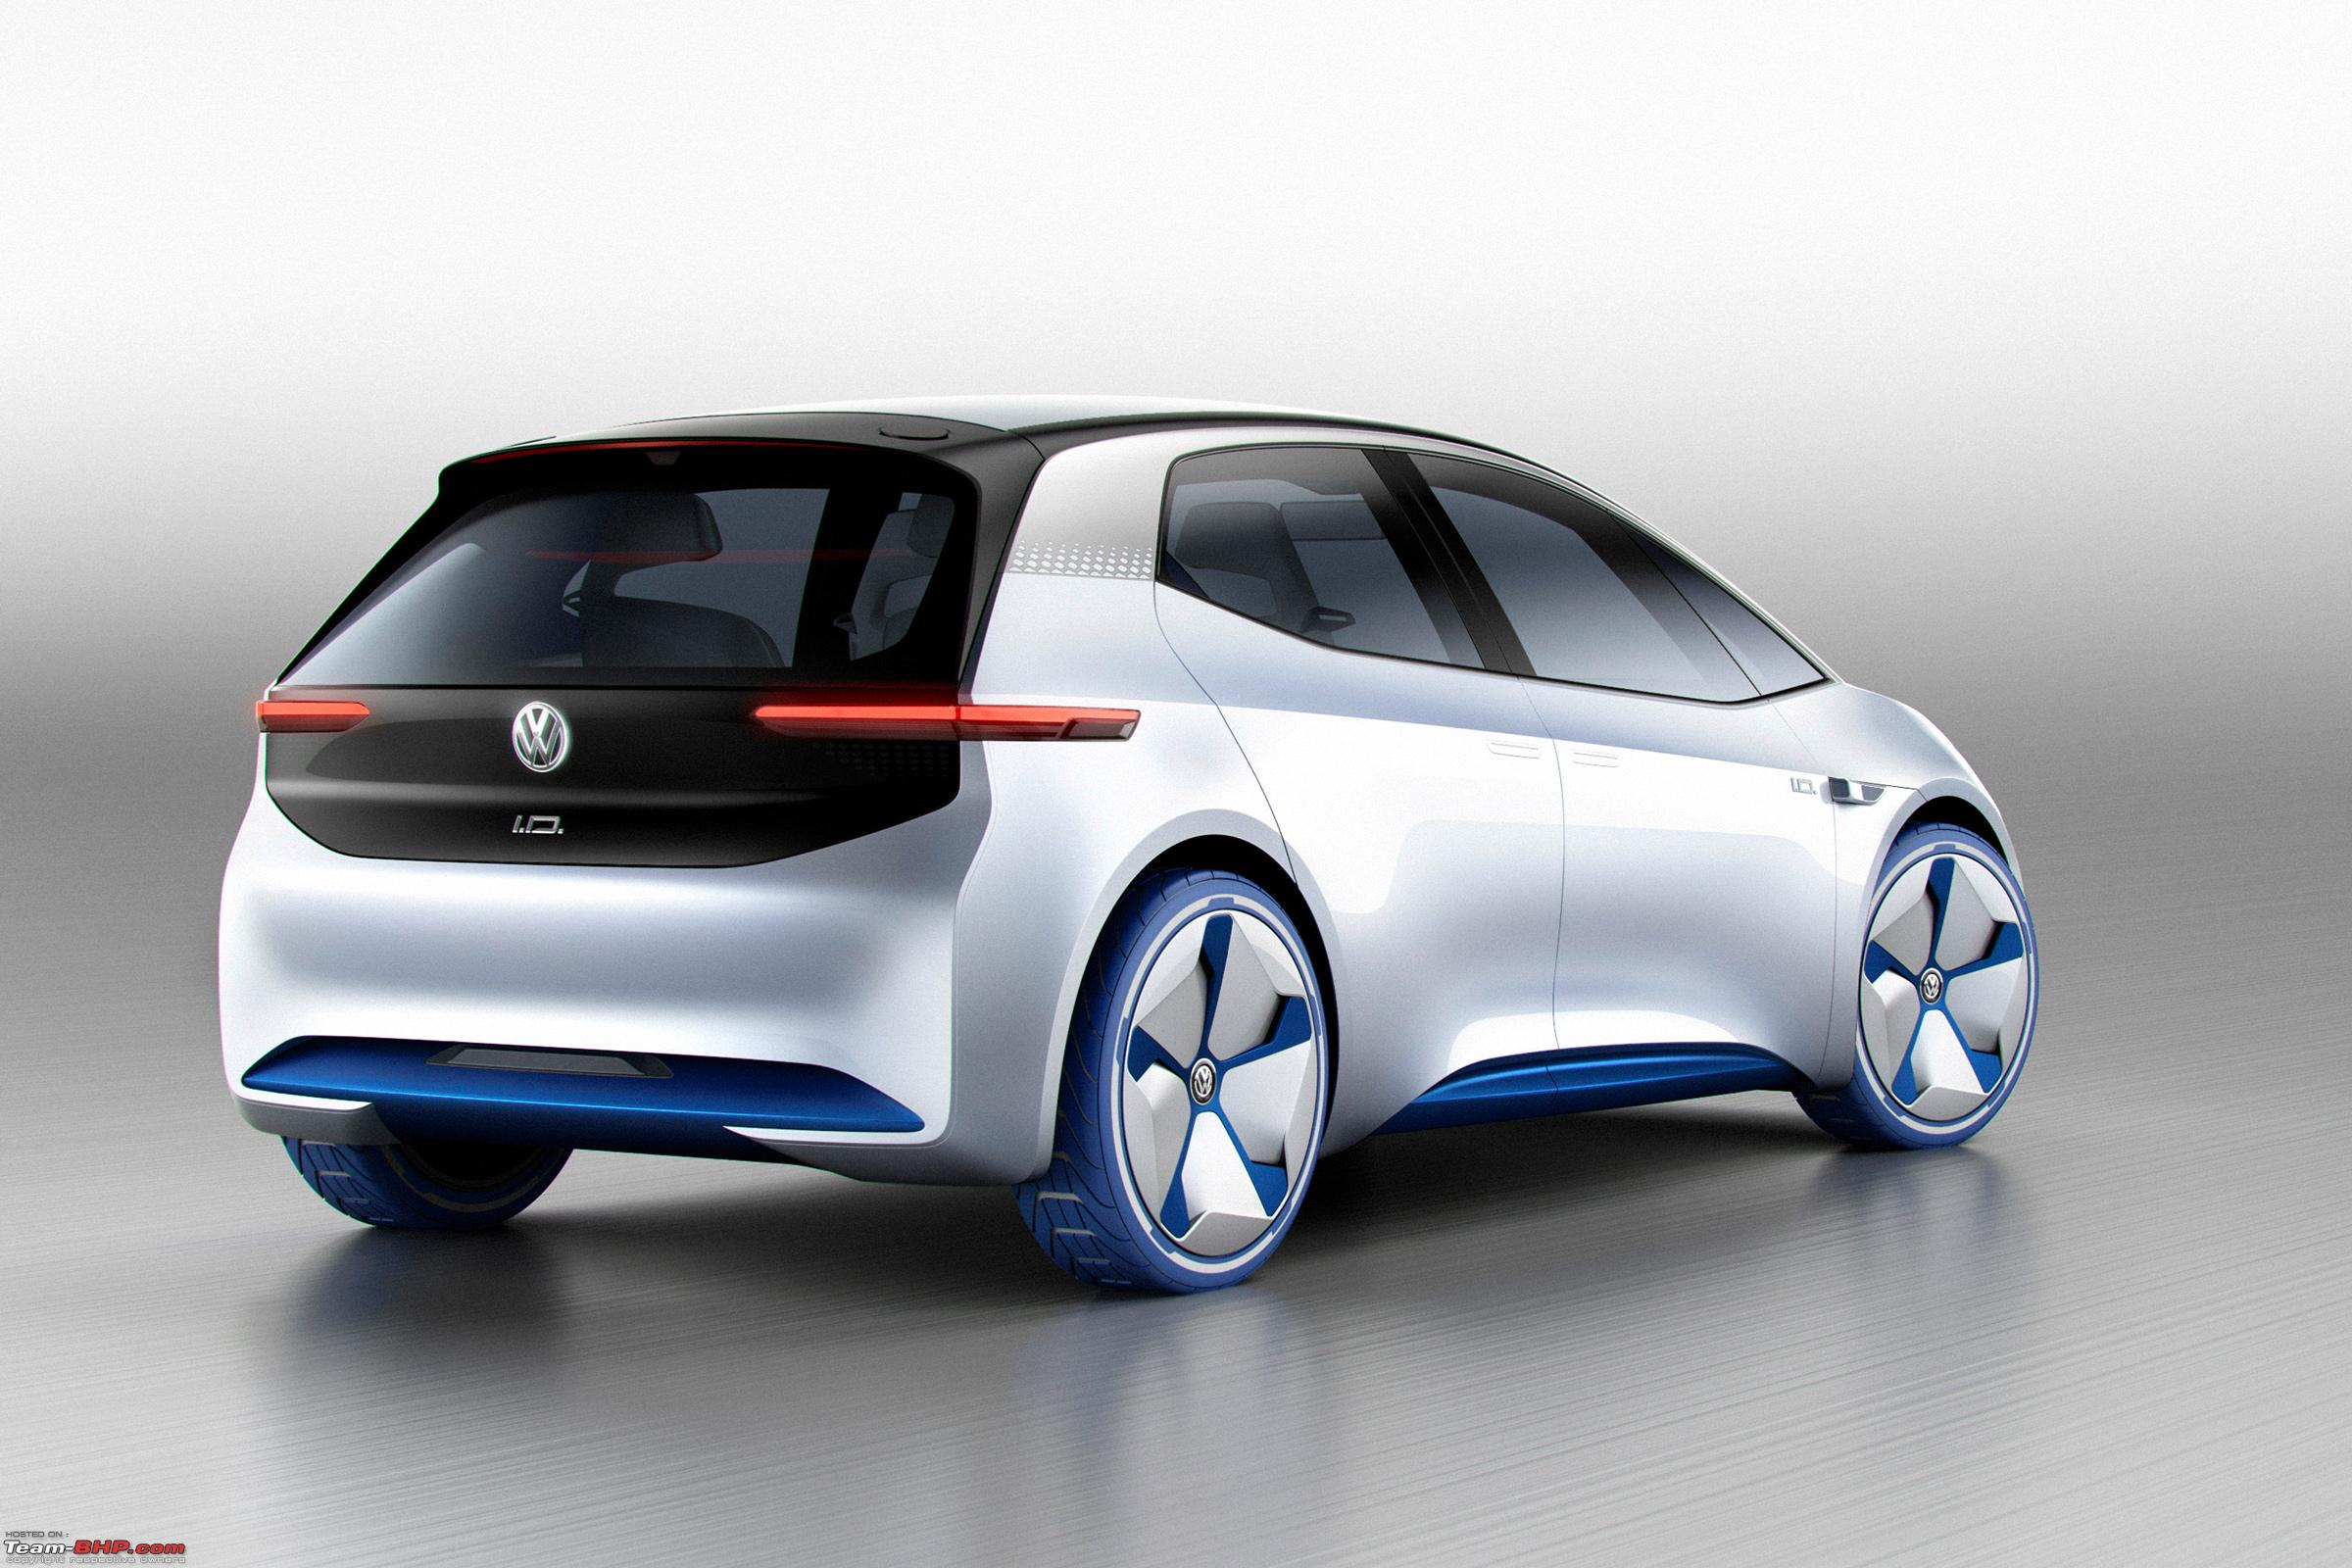 Volkswagen Plans New Electric Vehicle With A 500 Km Range